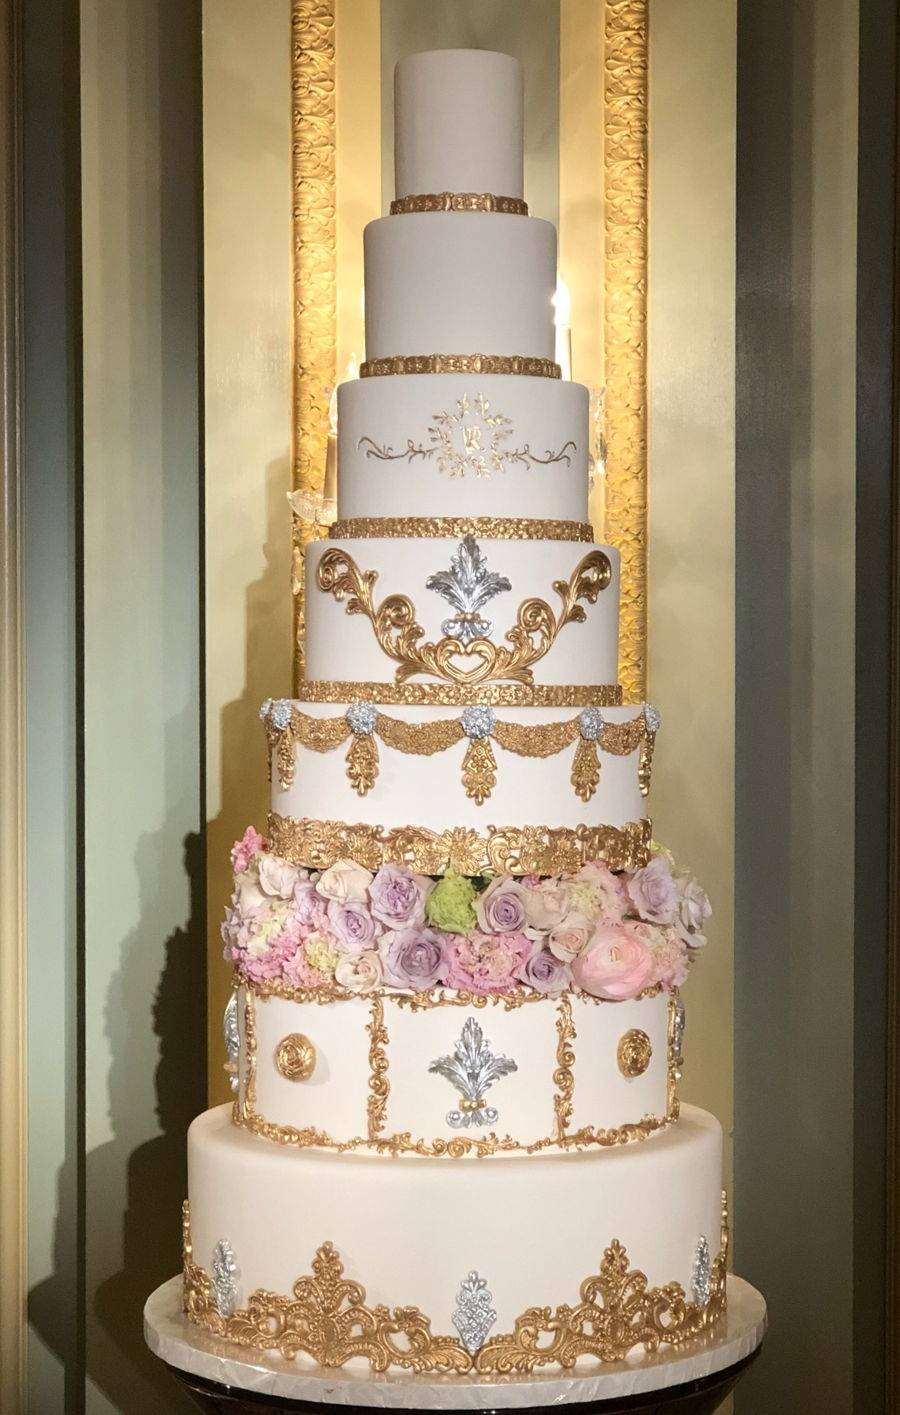 8 Tiers Wedding Cake With Gold And Silver Decorations - CakeCentral.com